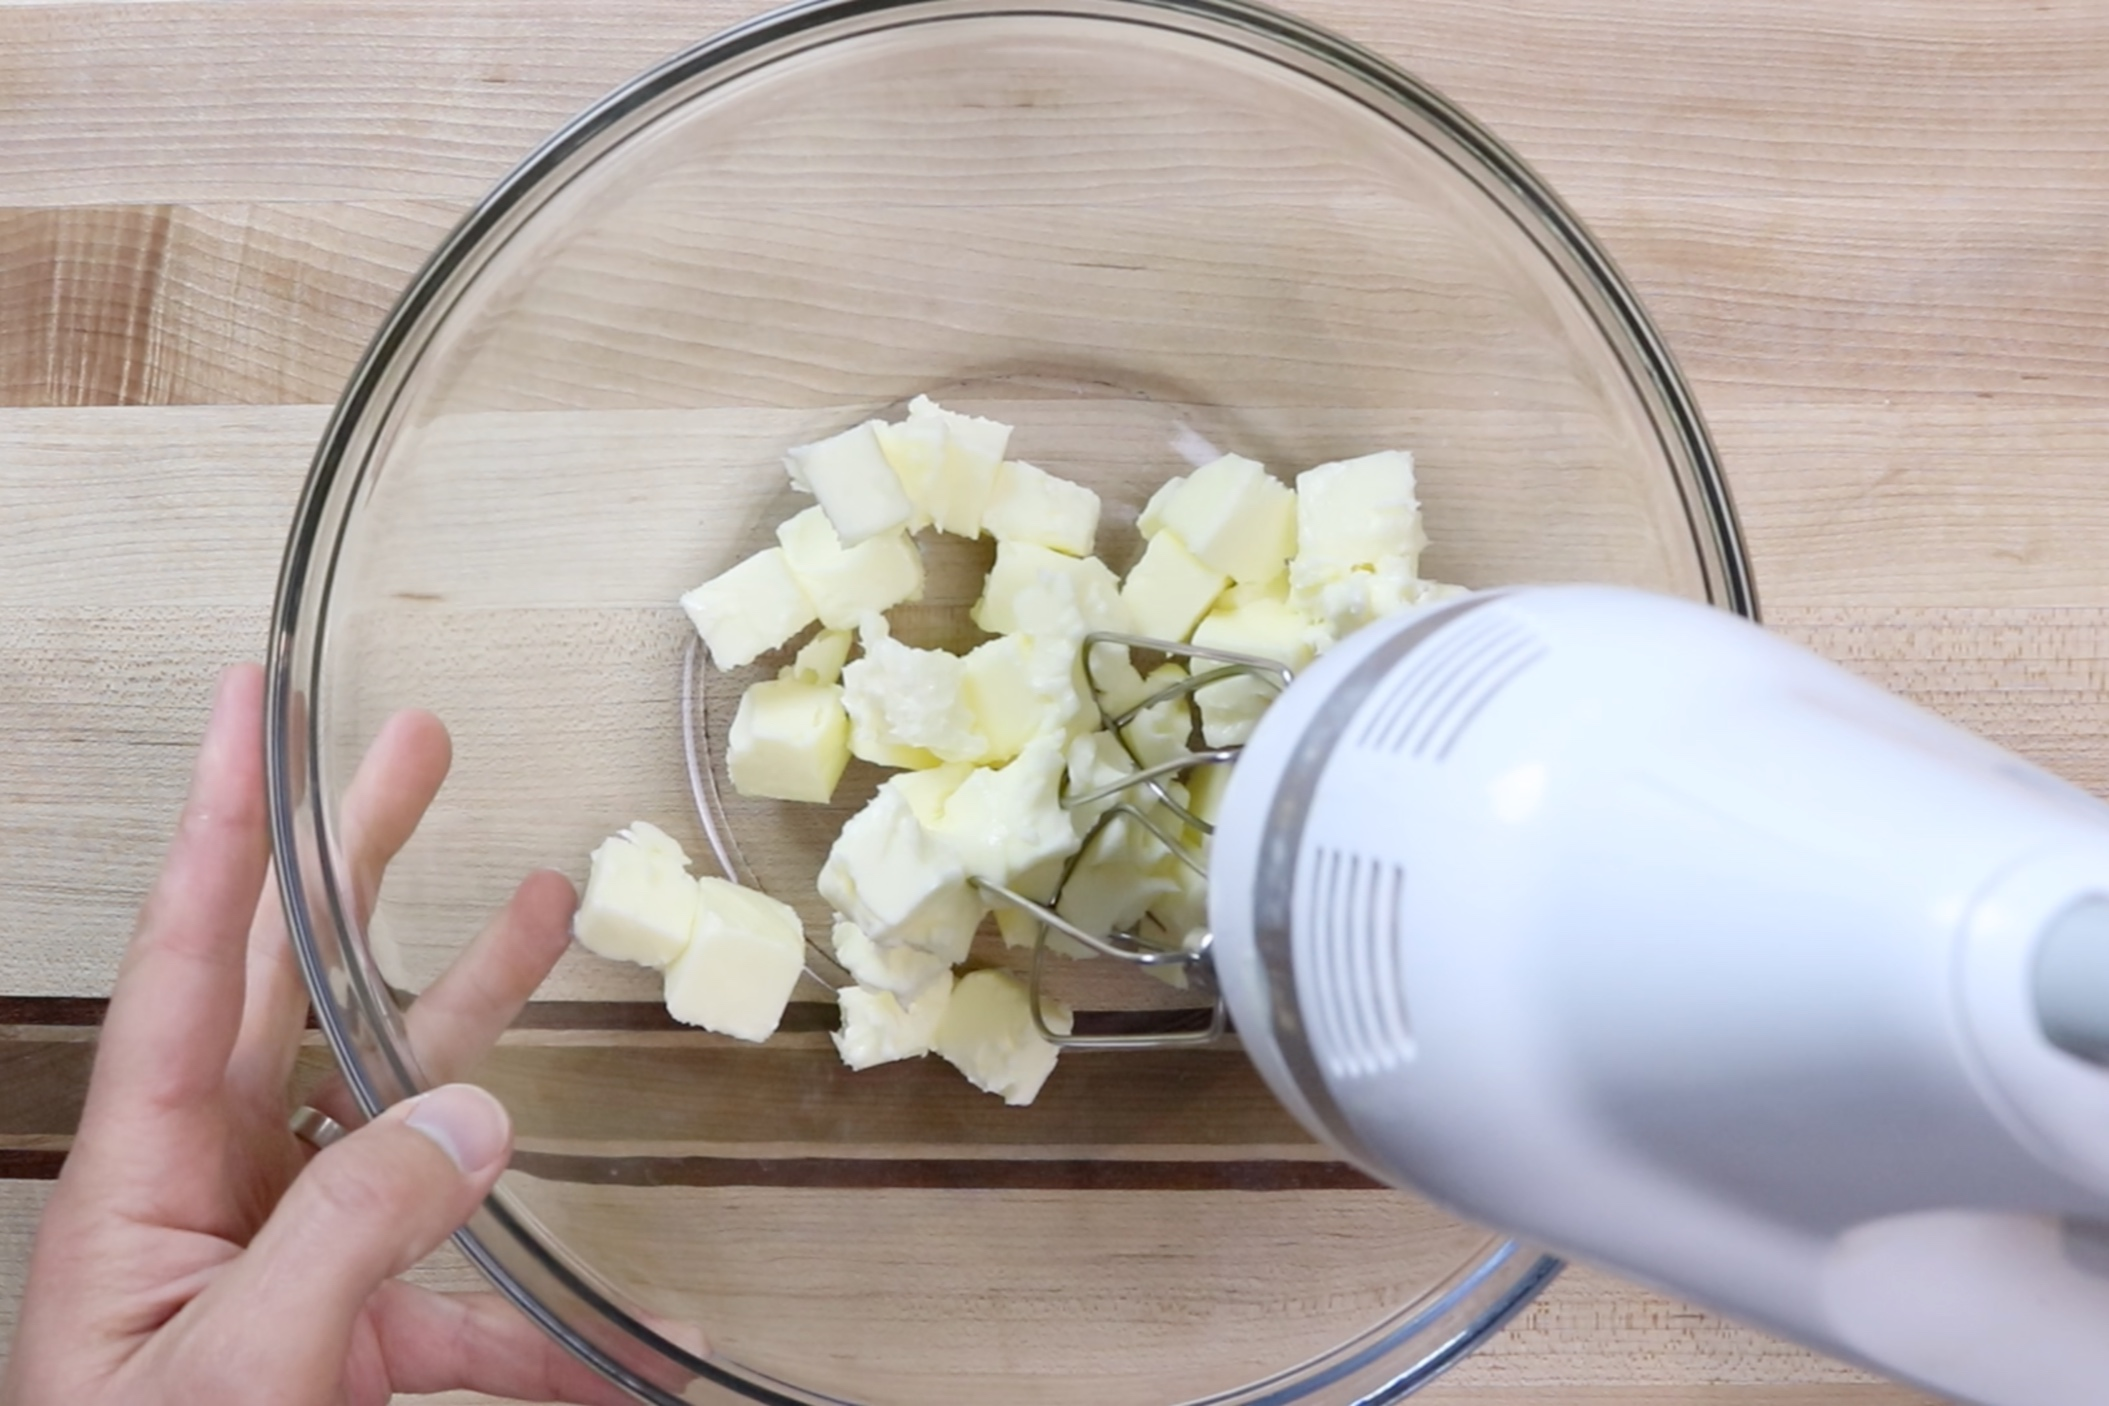 2. In a large bowl with a hand mixer or the bowl of a stand mixer, add butter and beat until creamy. Scraping down the sides when necessary. -